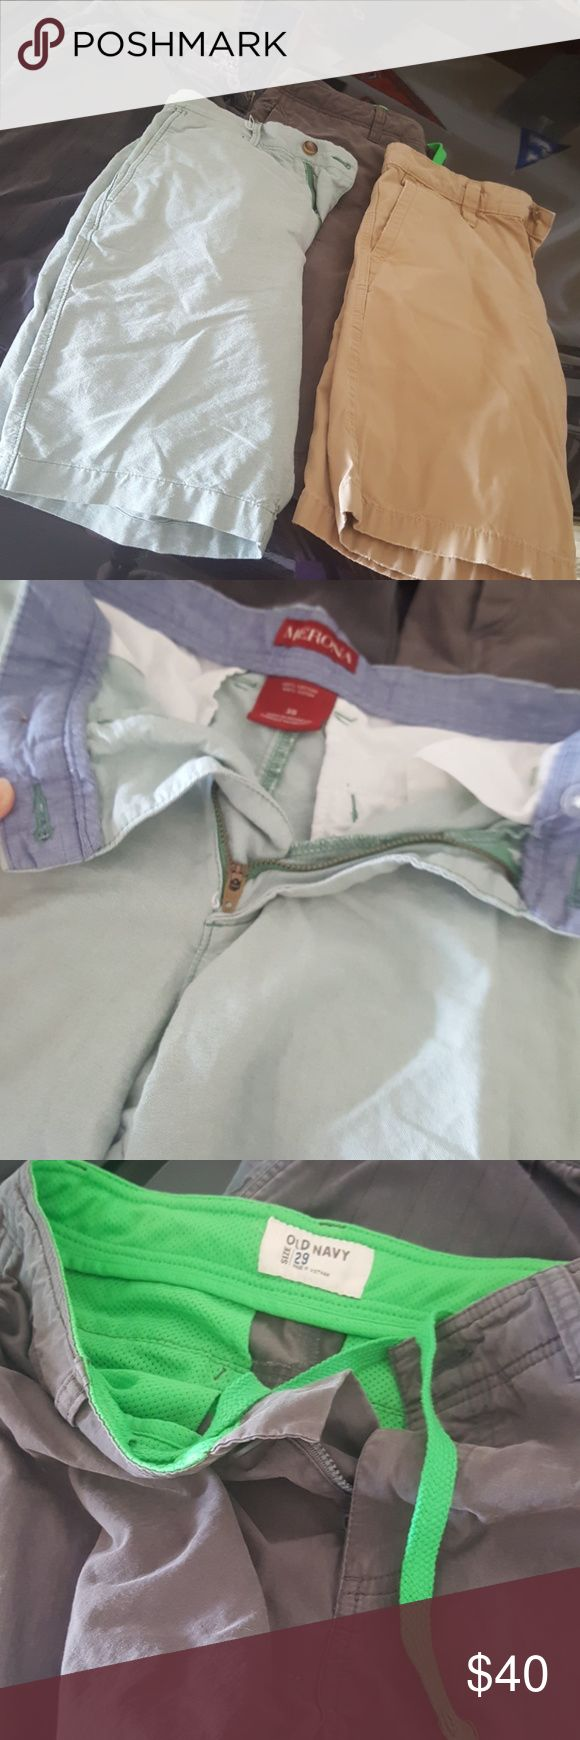 Lot of 4 pairs mens shorts sized 29-30 Lot of r pair men's shorts sized 29-30. 2 Greg pairs, one quicksilver and one old navy, one khaki pair unlabeled and one light green pair by merona.   Will accept offers.  Will send next day. Make a listing or bundle a lot to save on sale. Quiksilver Shorts Cargo